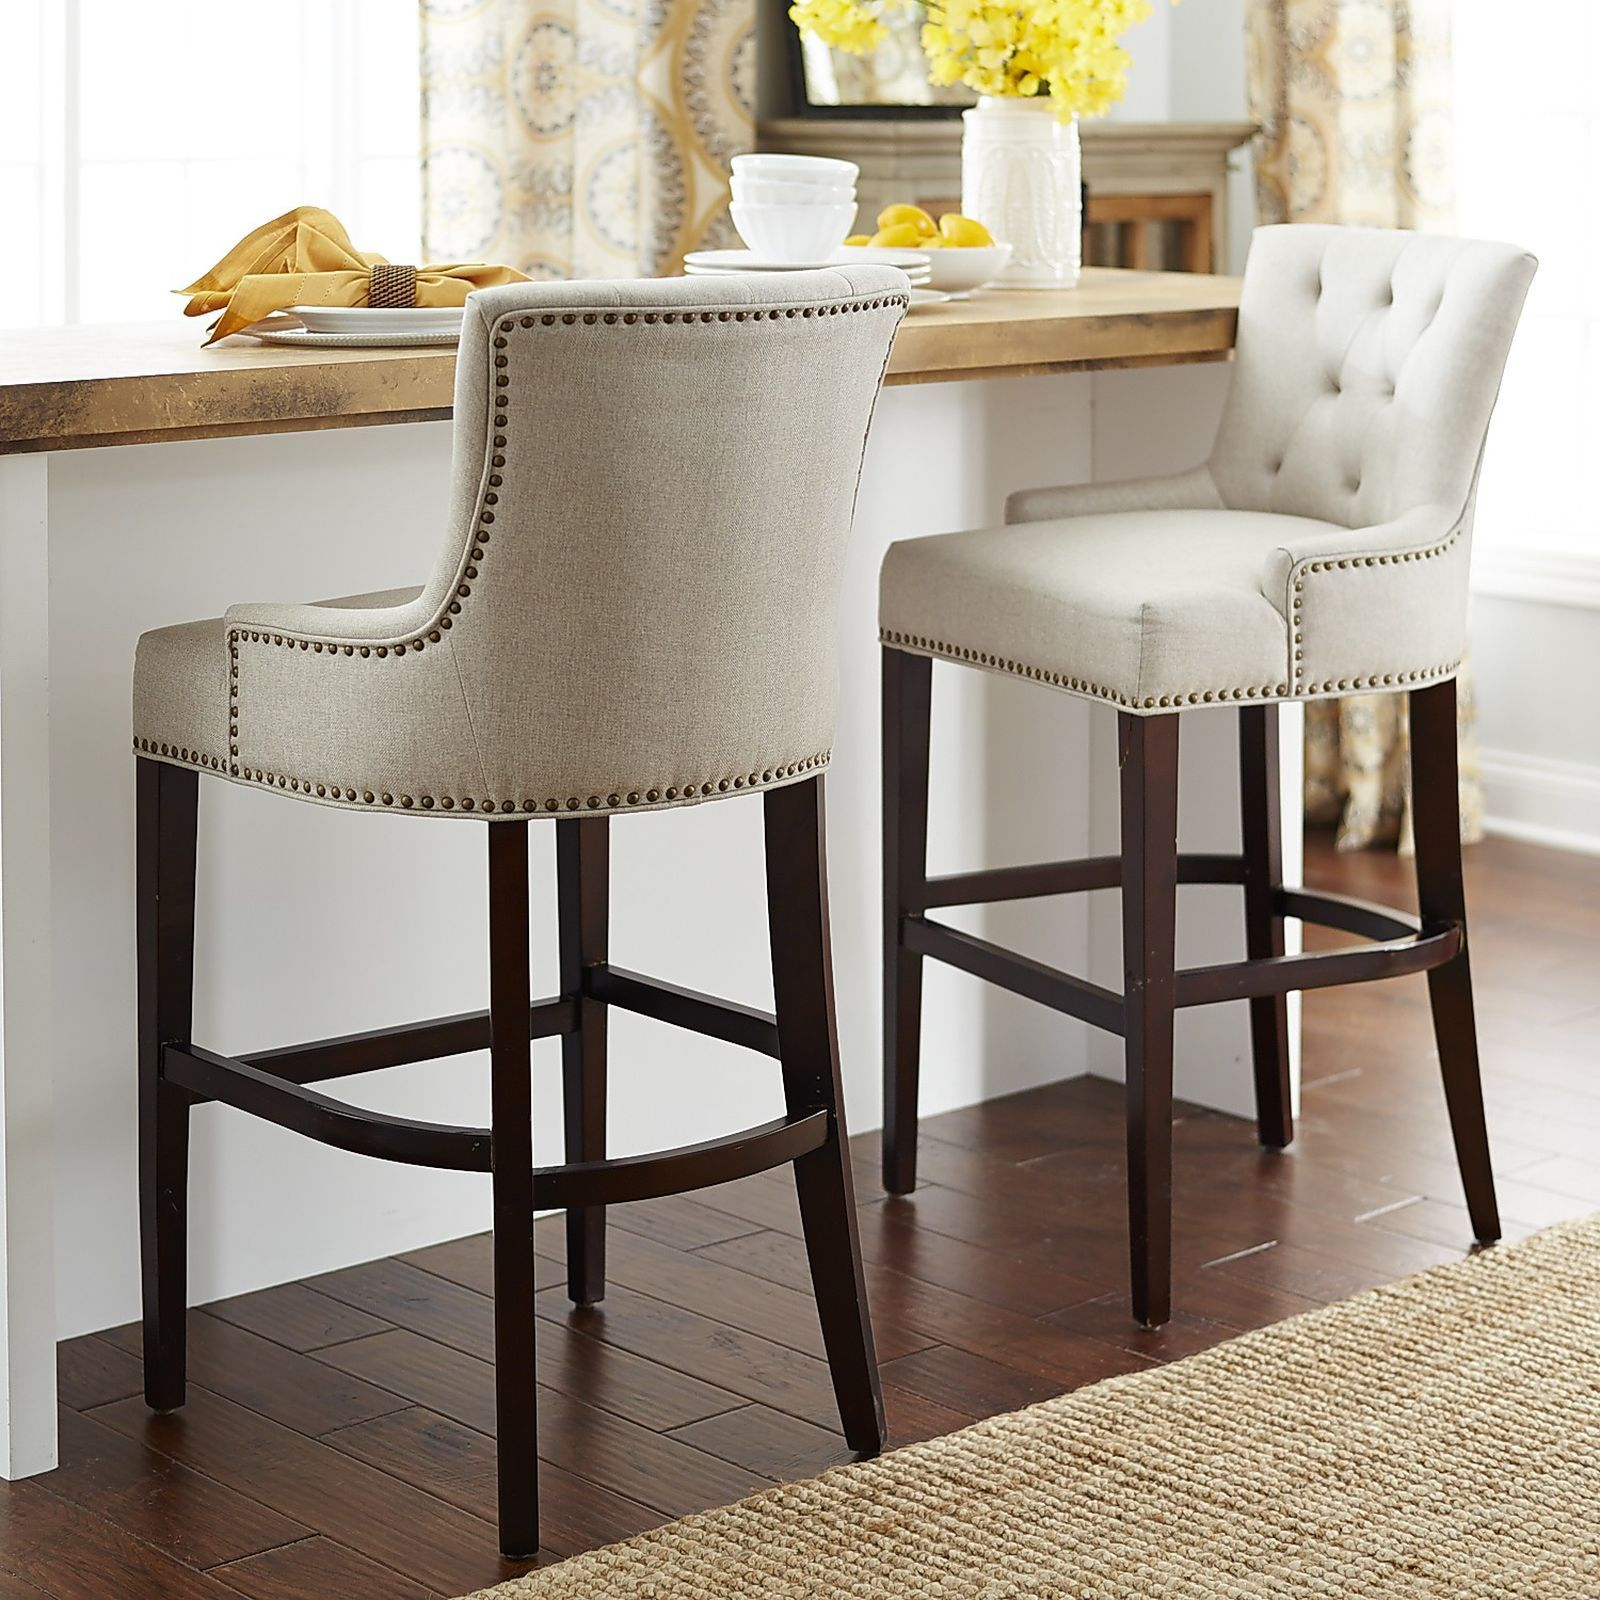 Ava Bar Counter Stools Flax Pier